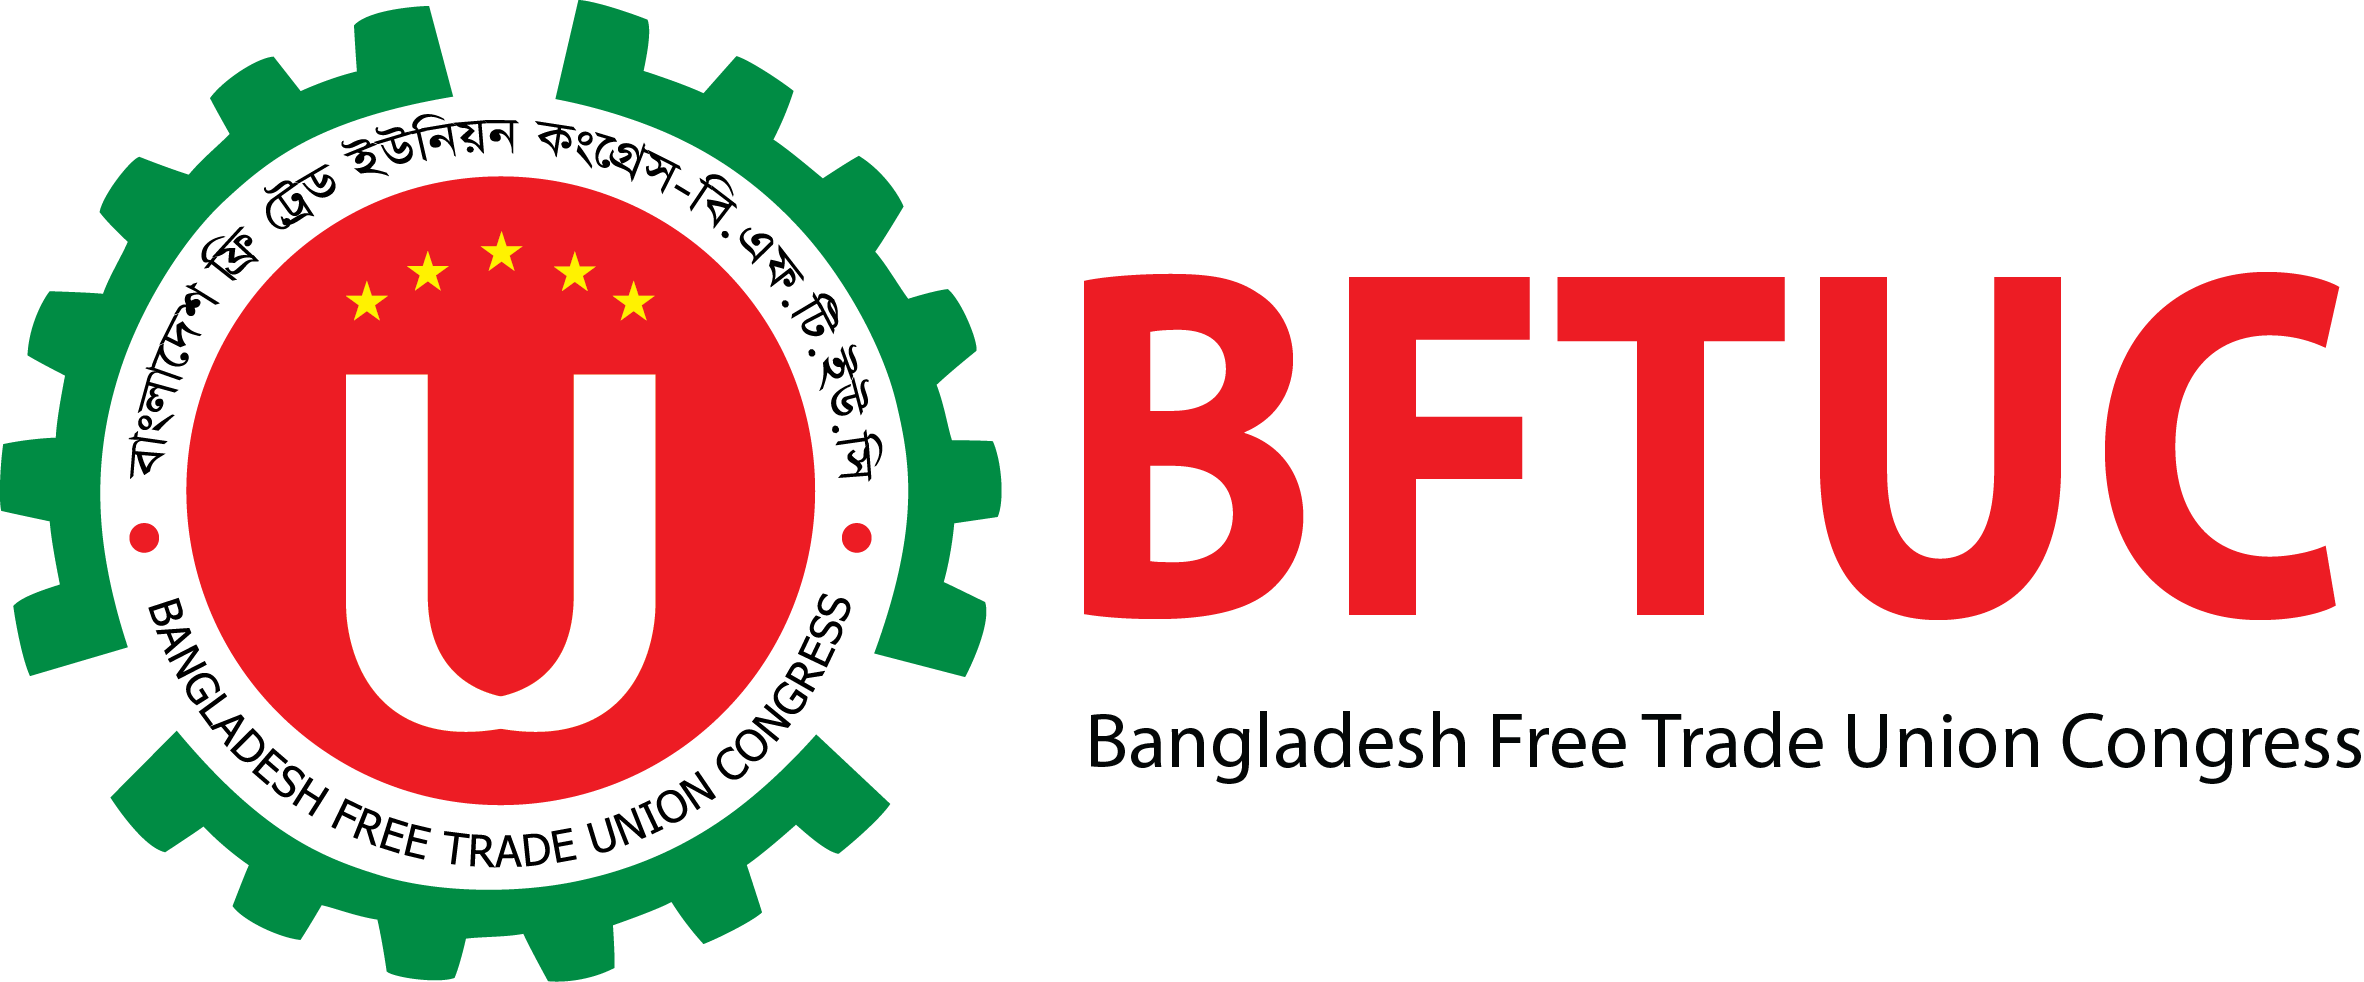 Bangladesh Free Trade Unions Congress